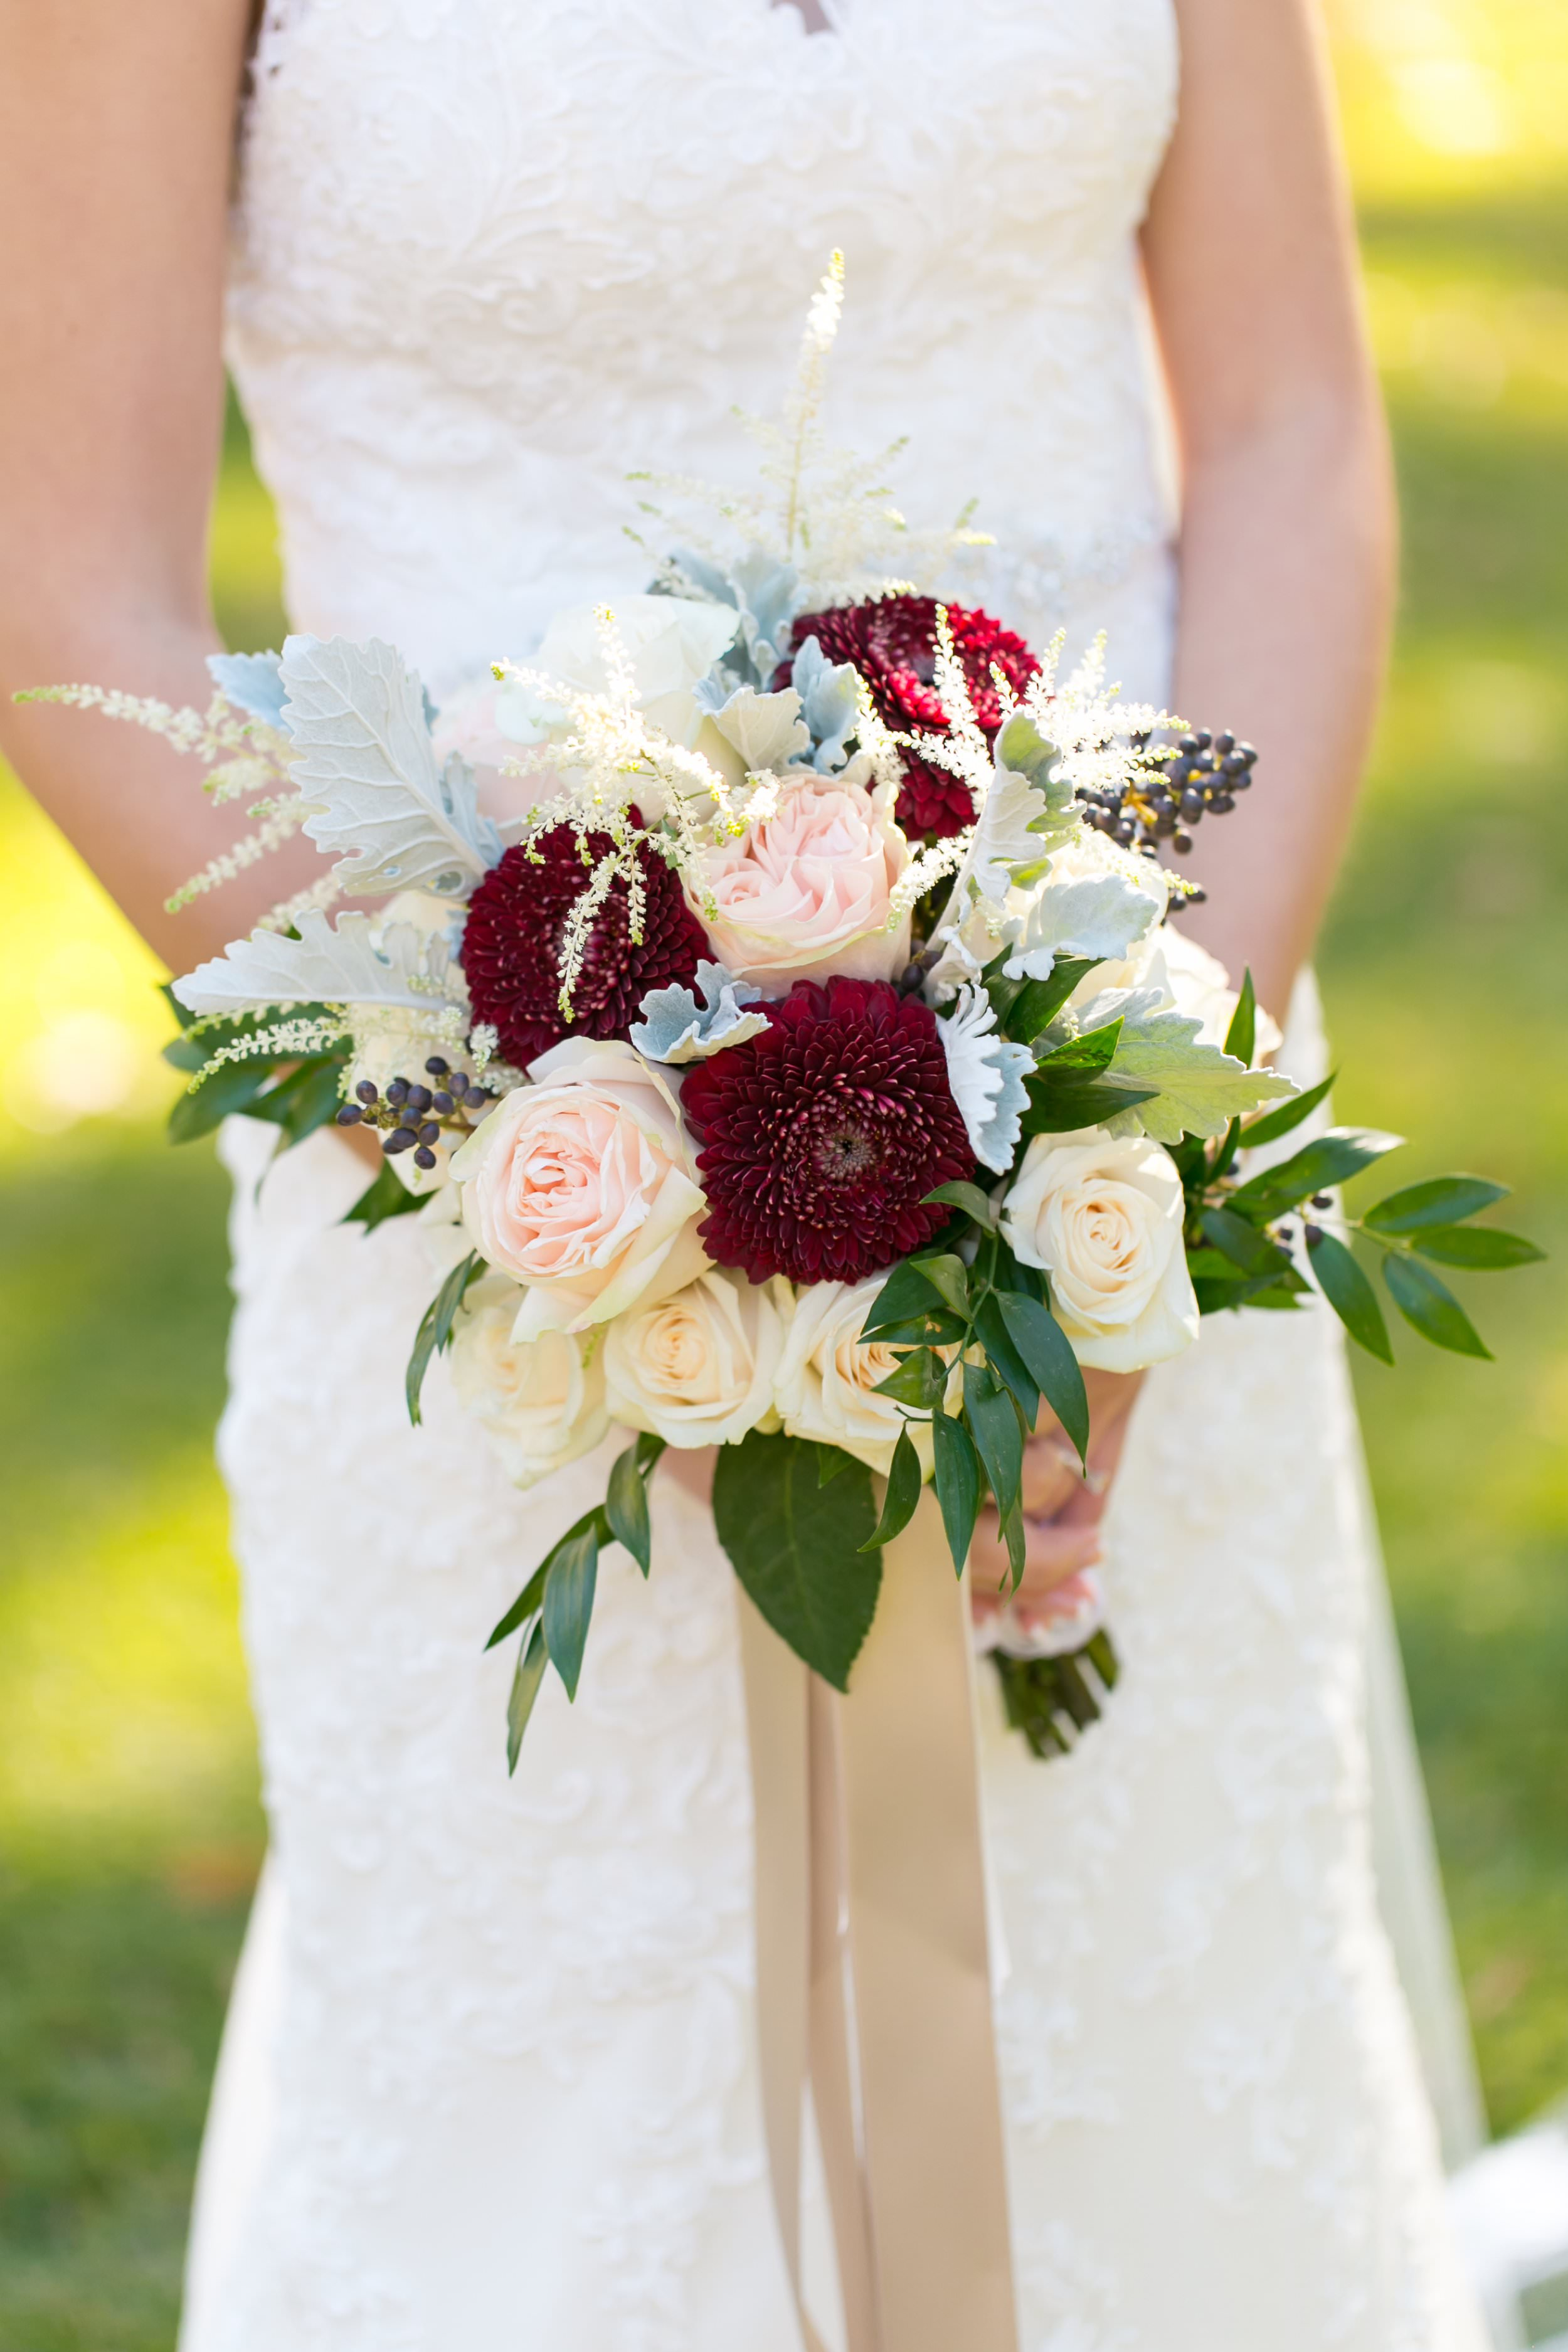 I love the mix of soft gray, cream, and wine colored flowers in Brittany's bridal bouquet by Melissa Senn of  Magnolia House and Garden . It was the ideal palette for her joyful November wedding.